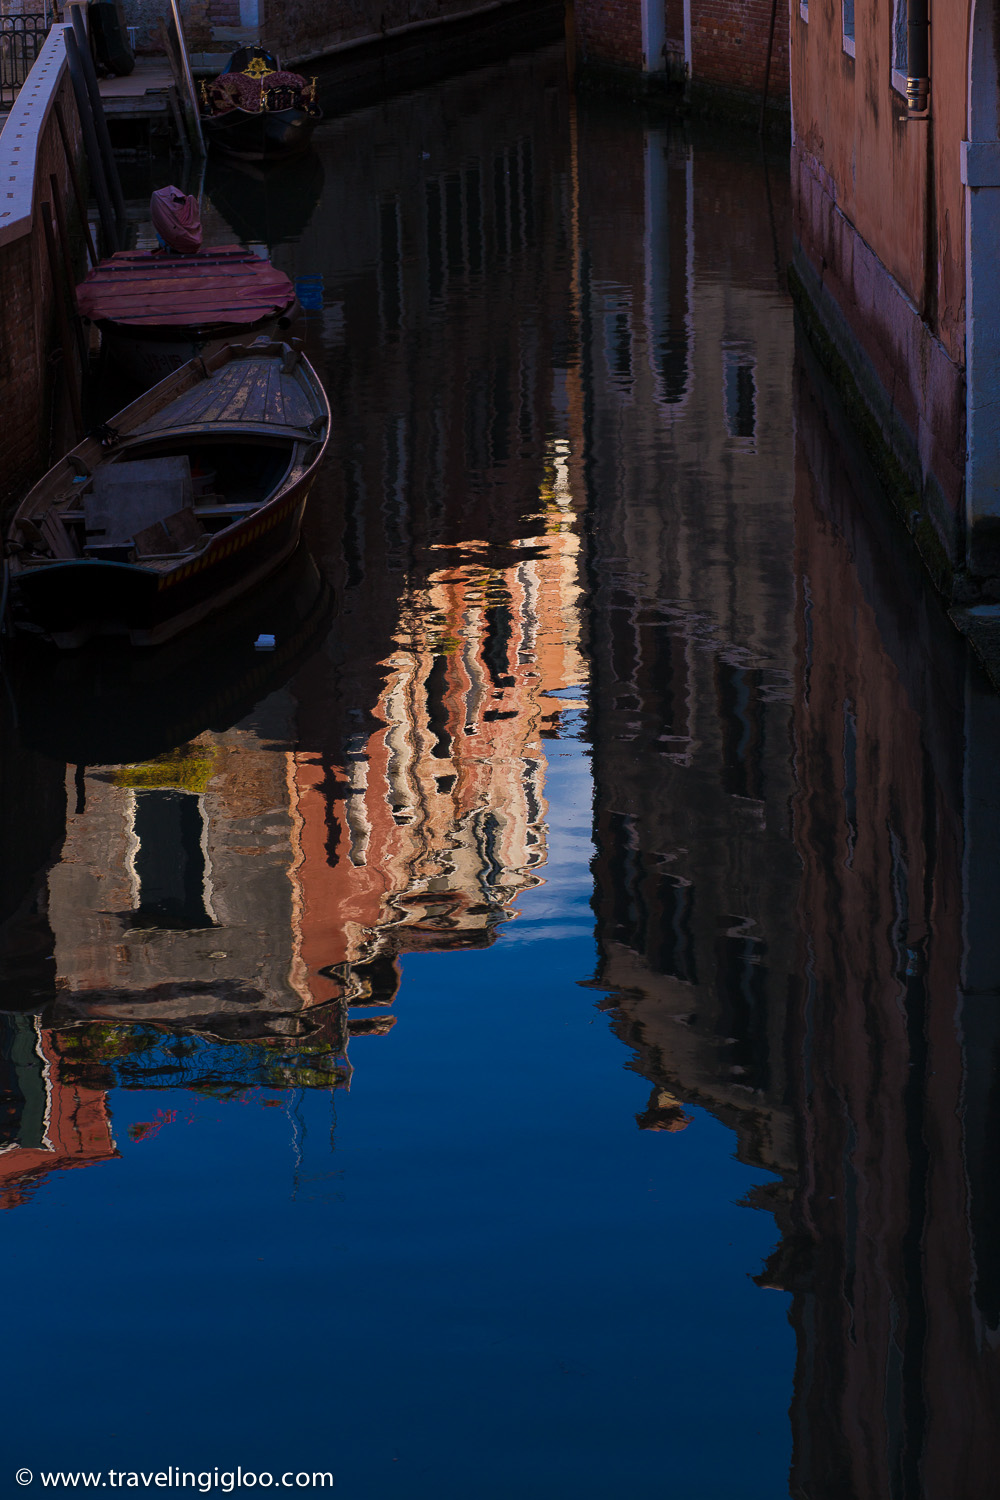 Venice-and-LakeGarda-20130521-501.jpg